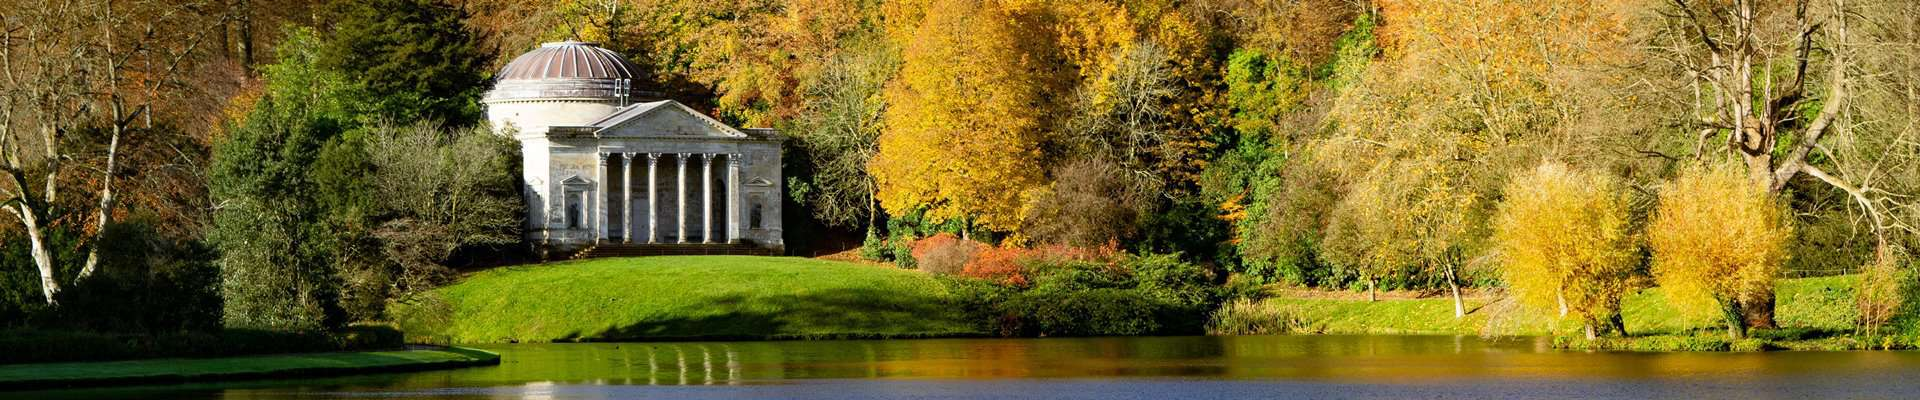 Stourhead in Wiltshire is well known for its autumn colours.